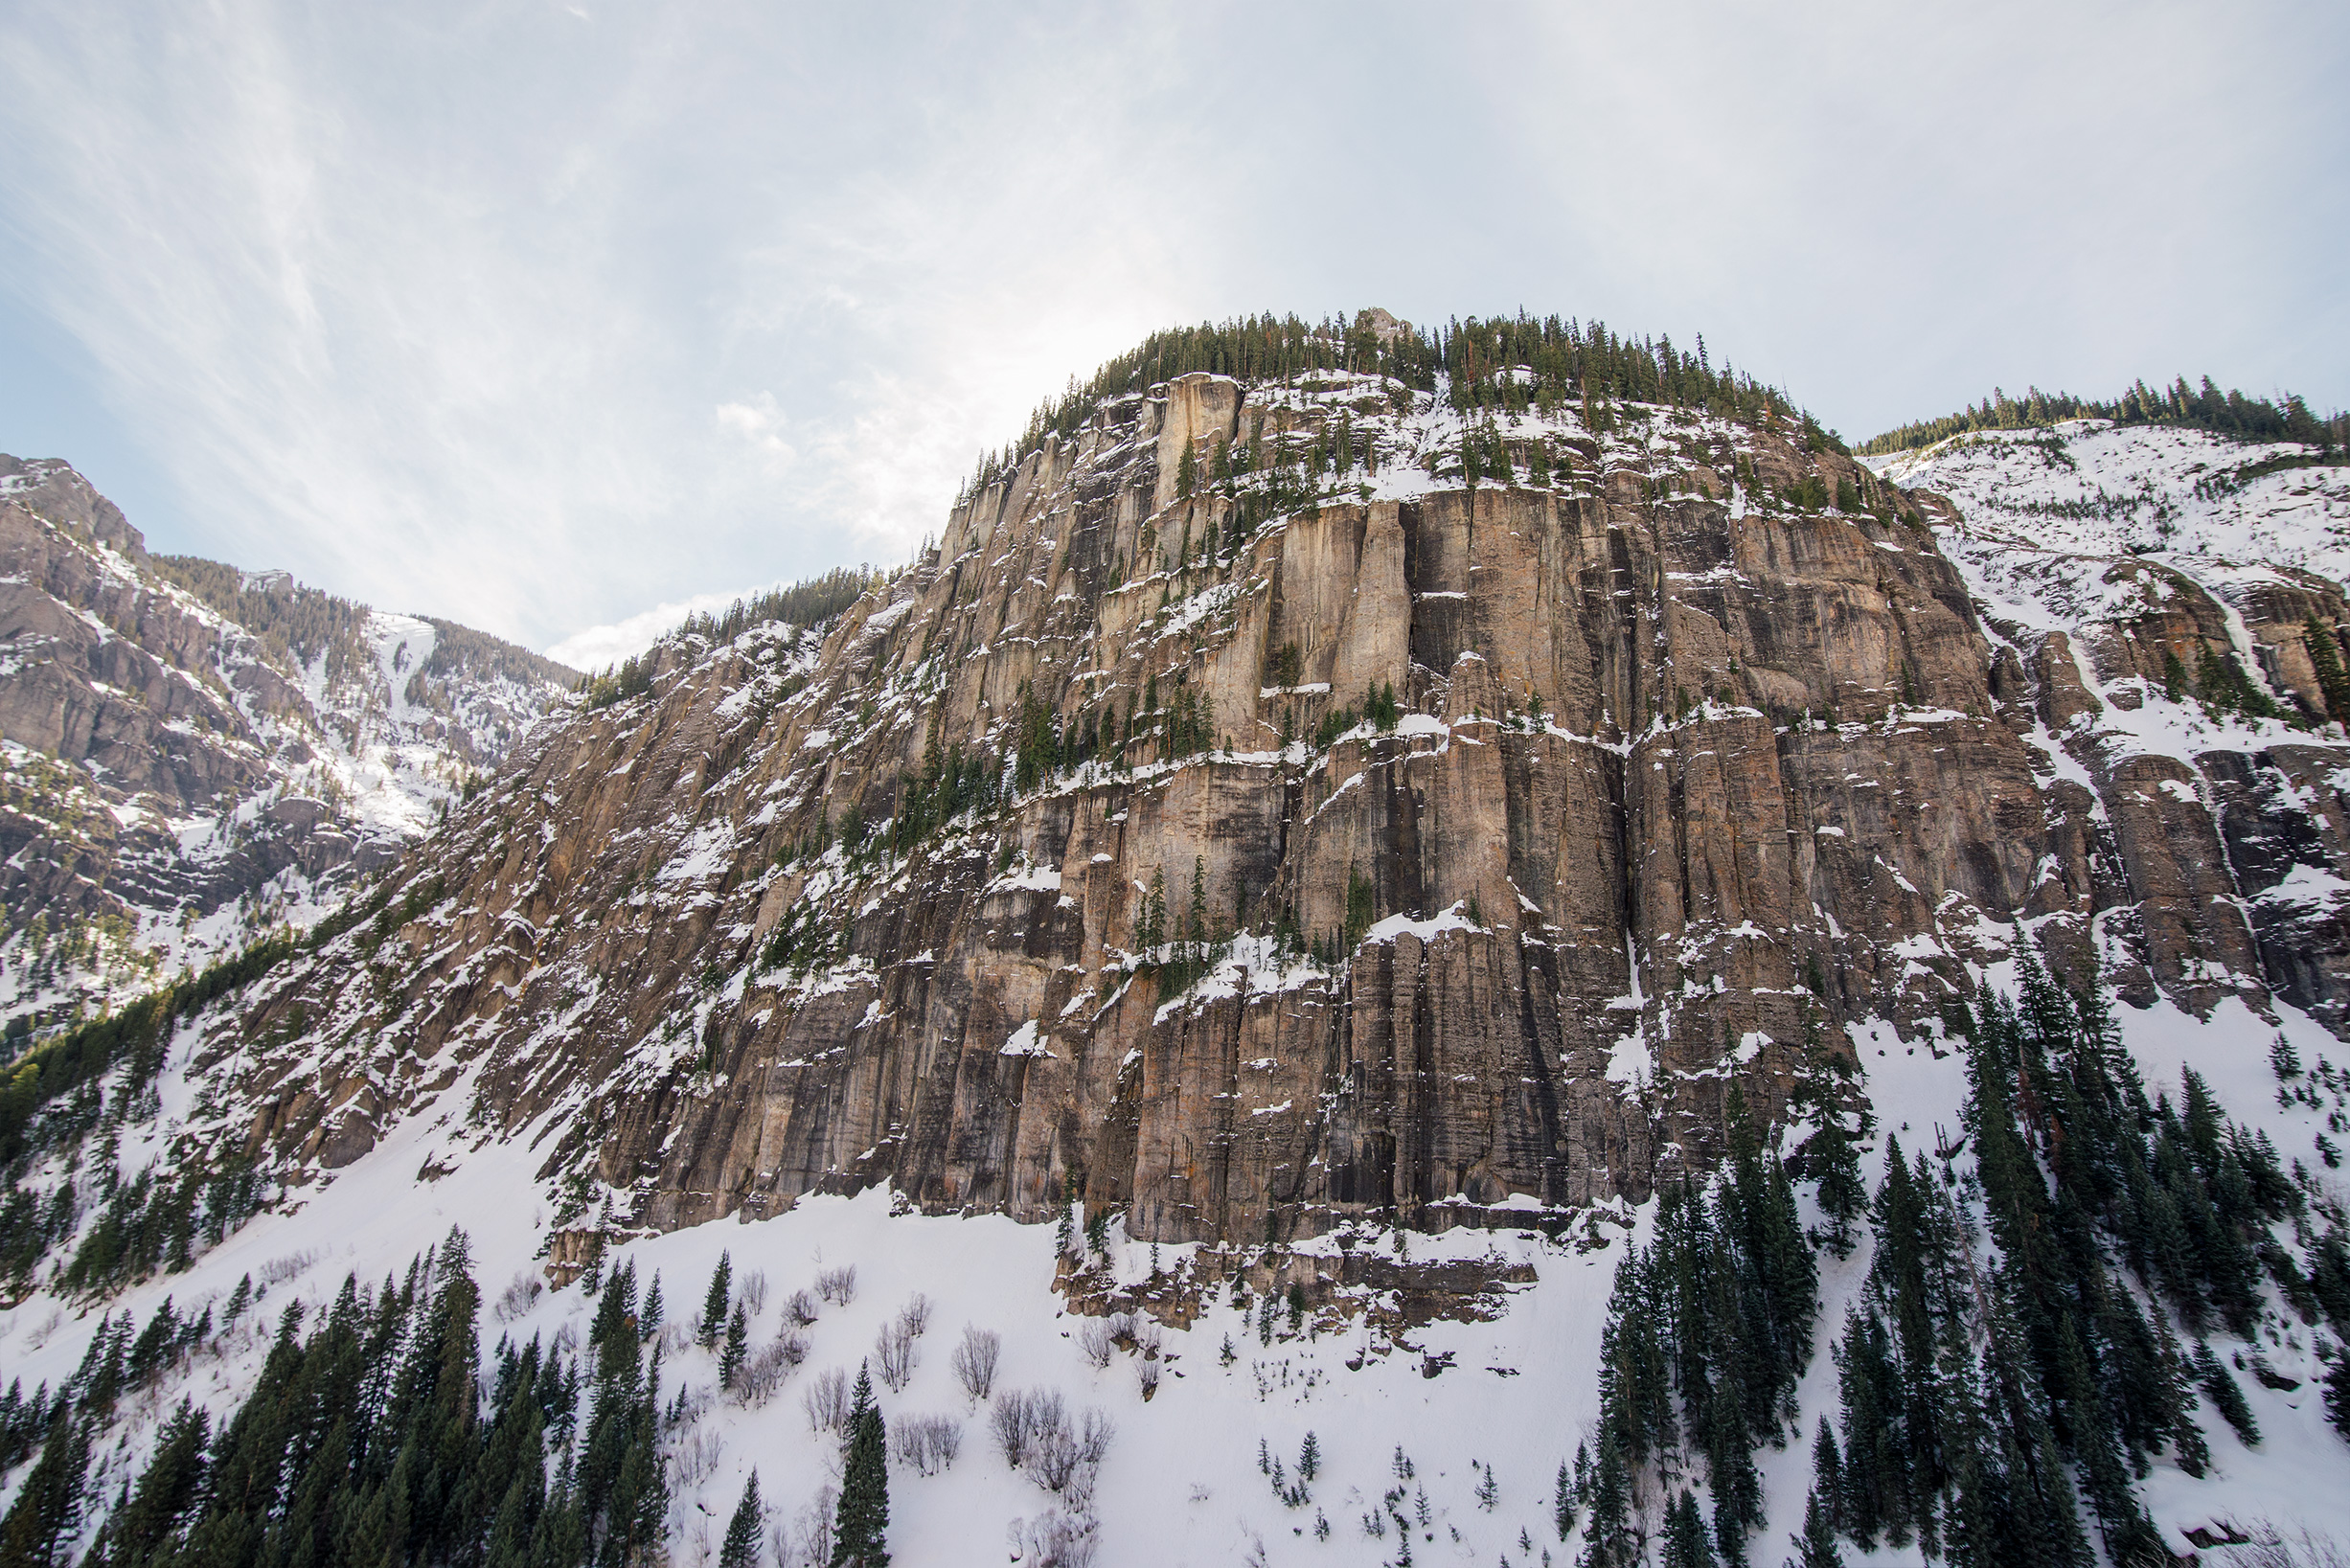 Cliffs in Ouray, Colorado